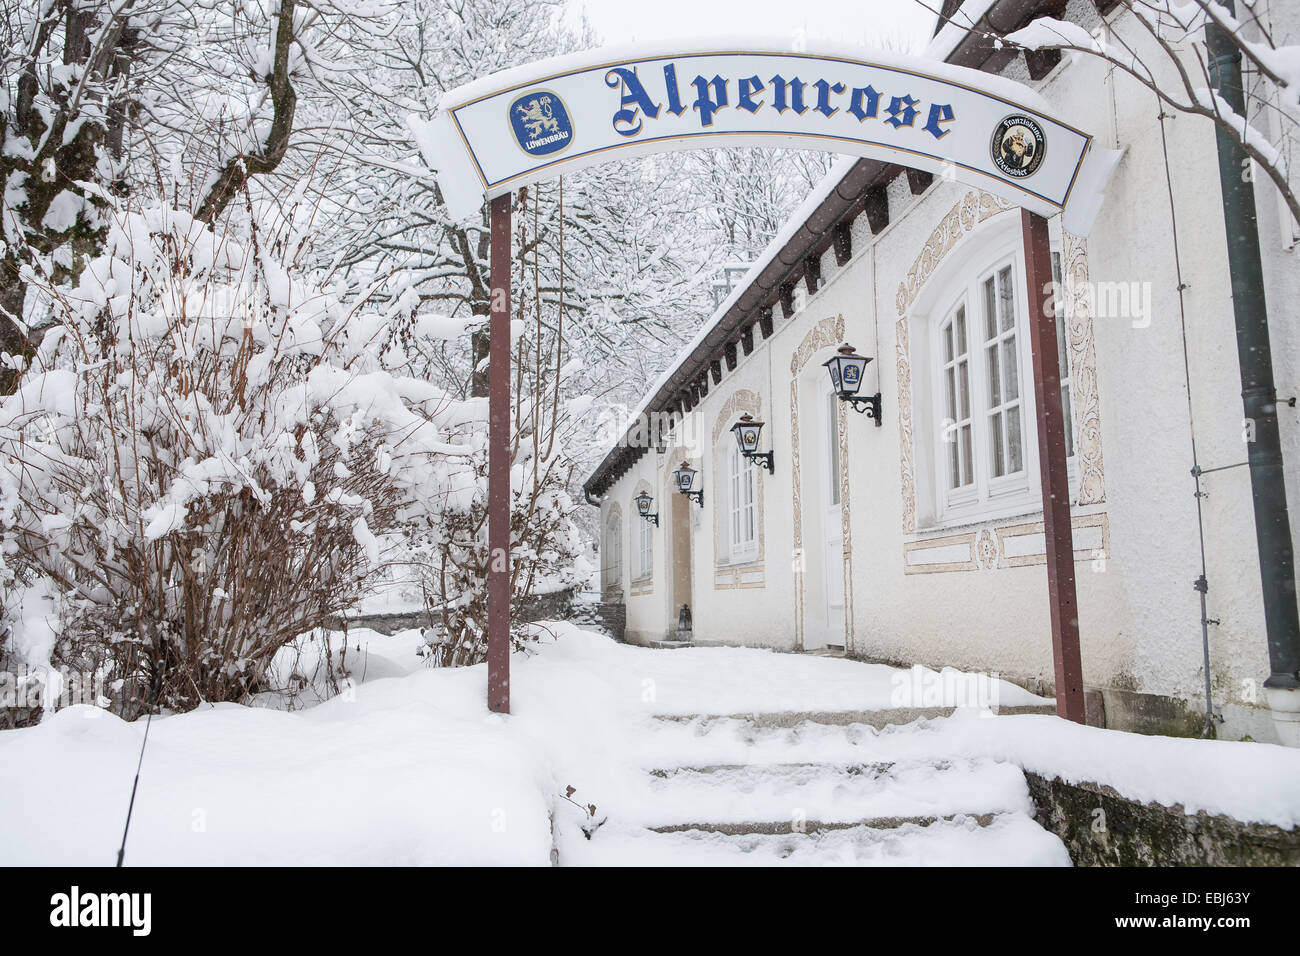 Wintry streets of Bayrischzell in Bavarian Alps, Germany - Stock Image